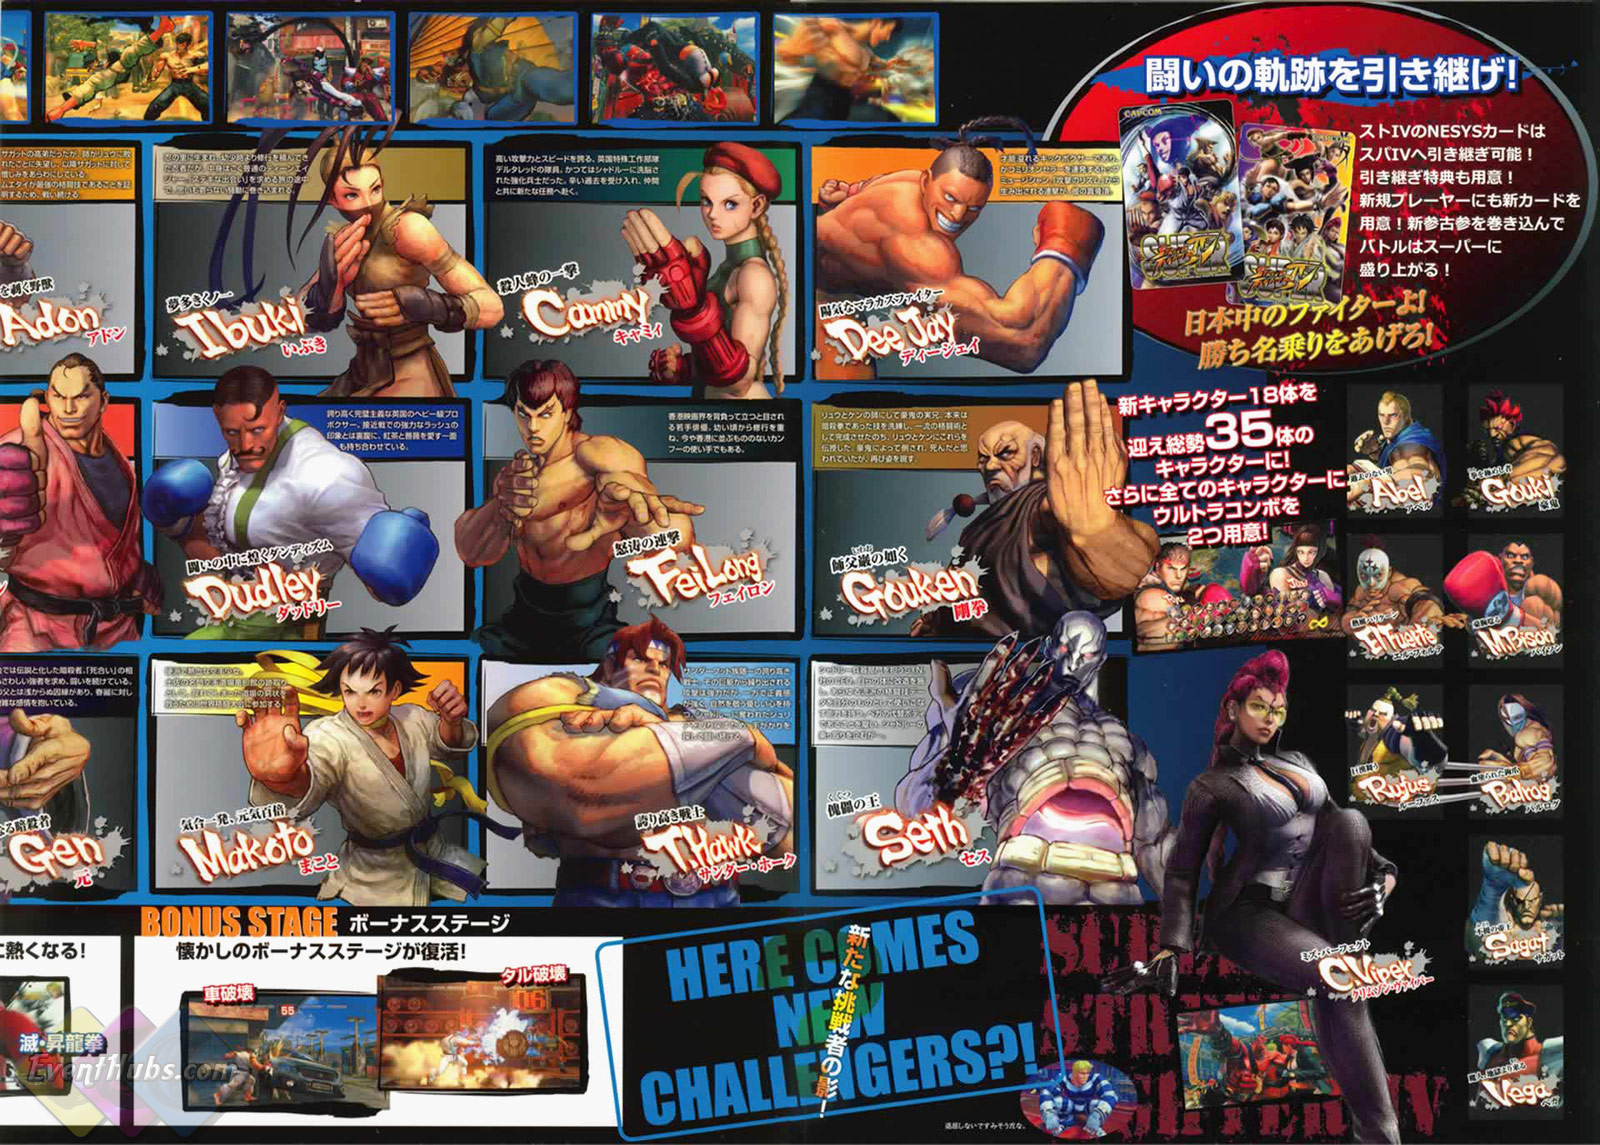 Scan of a Super Street Fighter 4 arcade flyer hinting at new characters